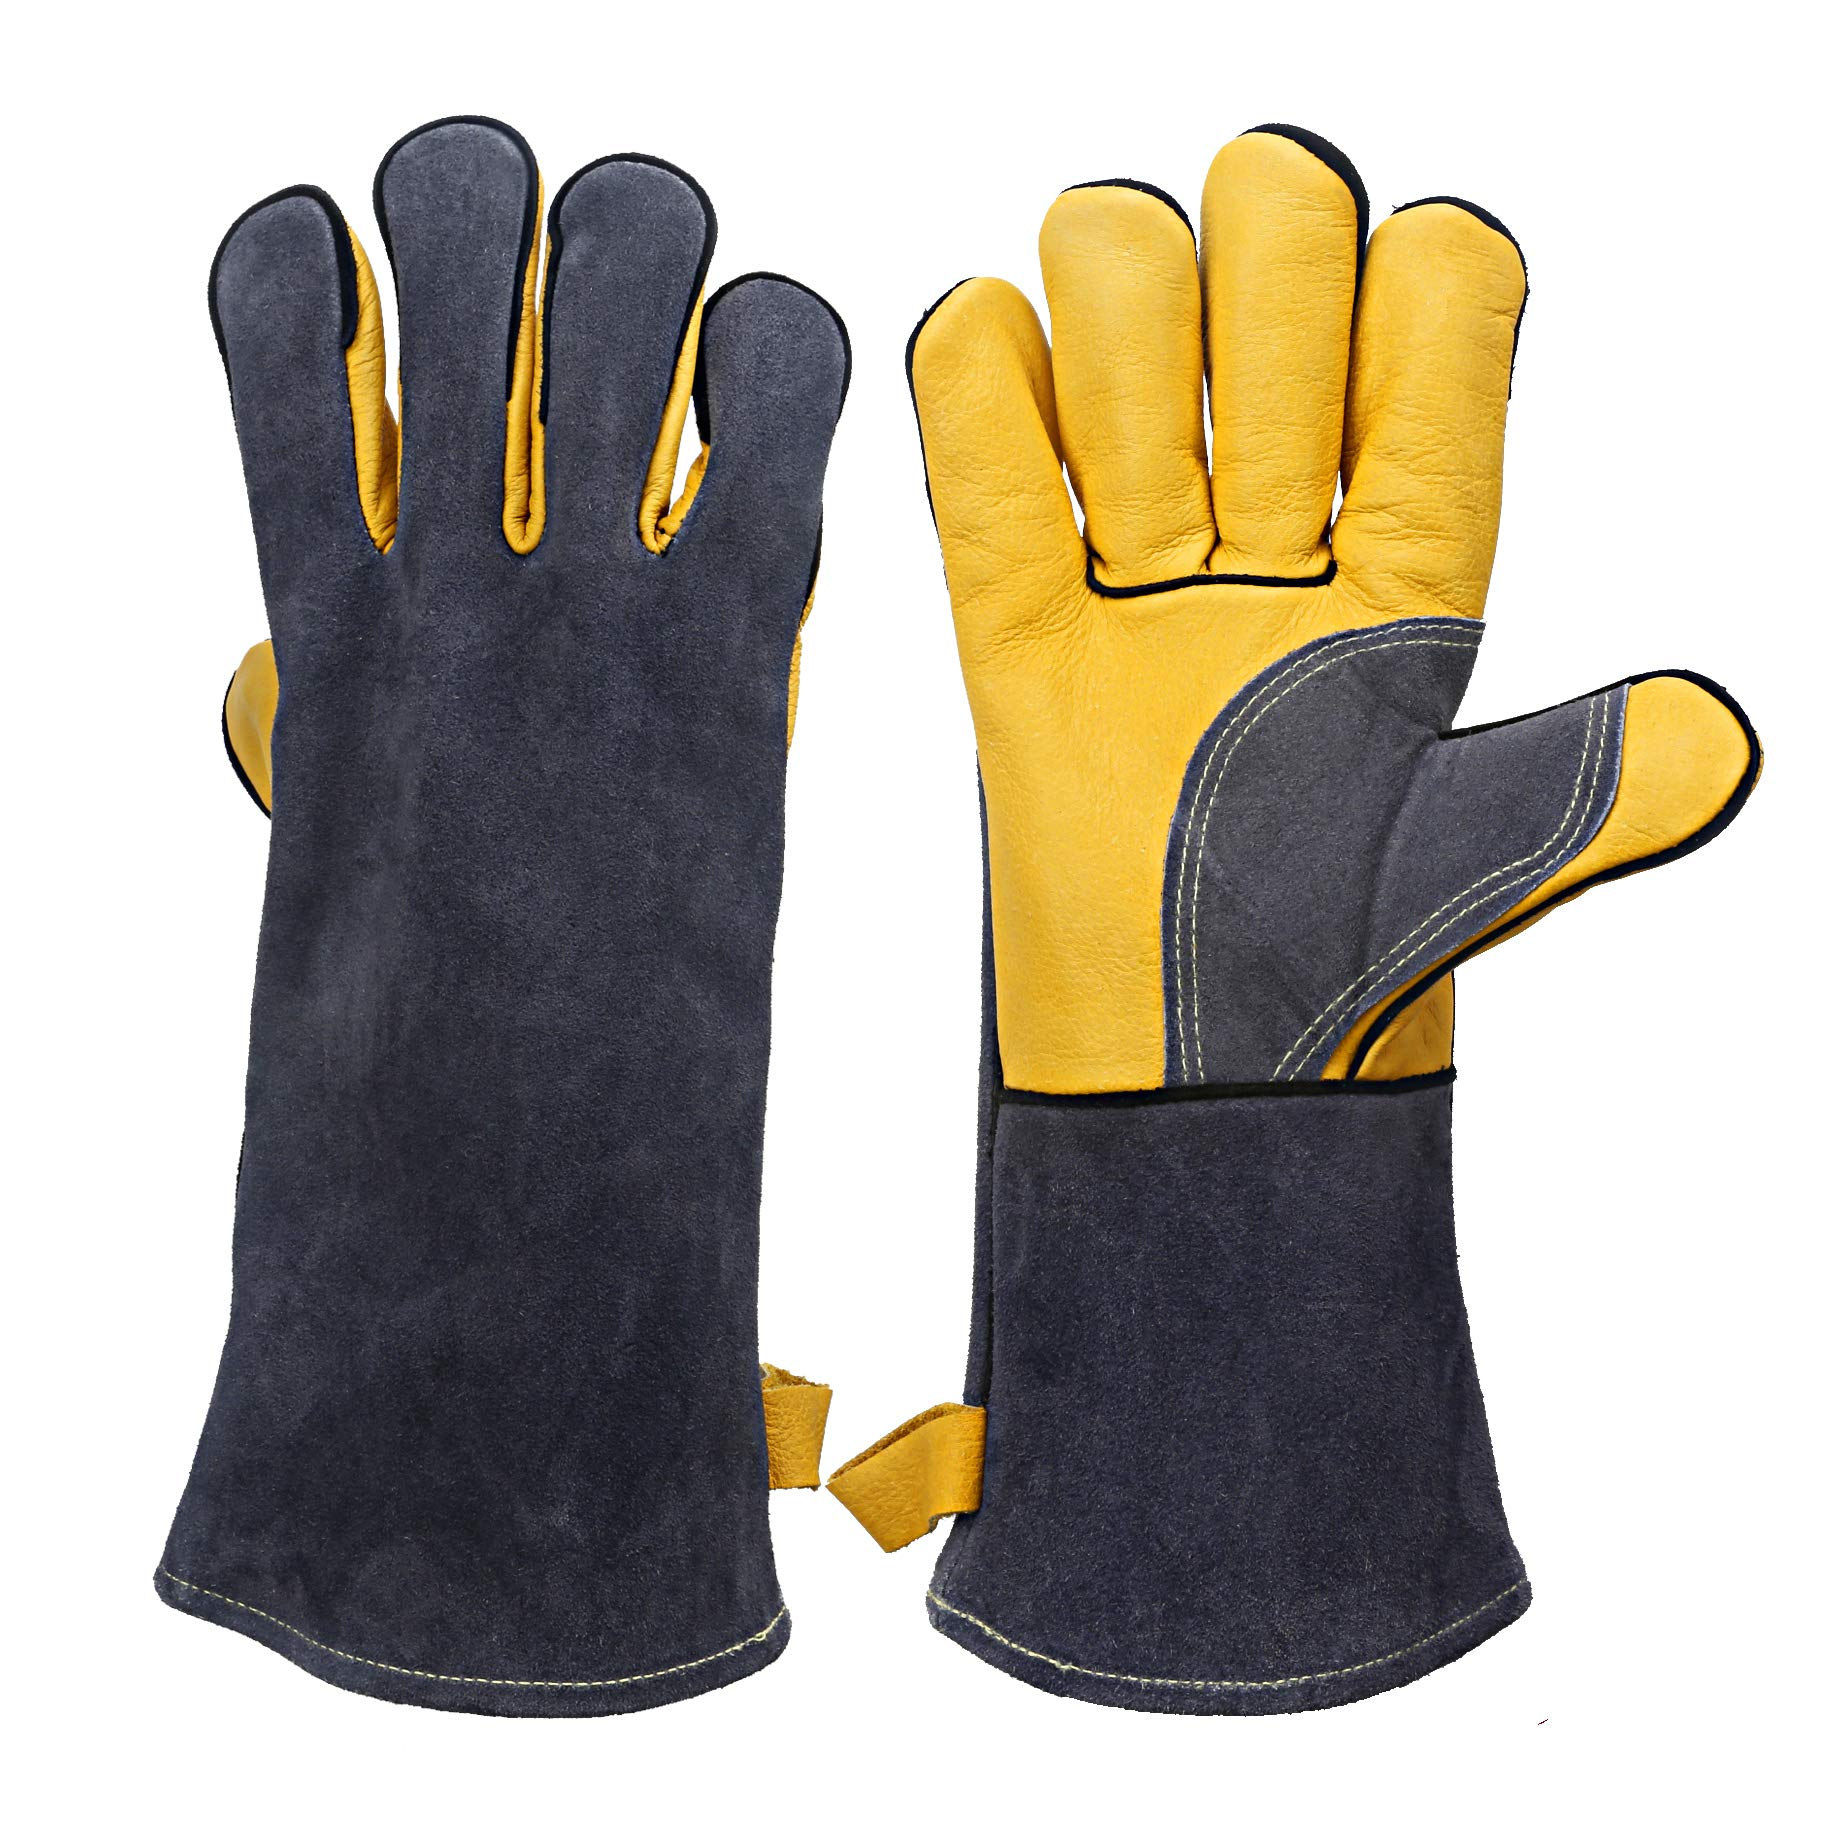 KIM YUAN Extreme Heat & Fire Resistant Gloves Leather with Kevlar Stitching,Perfect for Fireplace, Stove, Oven, Grill, Welding, BBQ, Mig, Pot Holder, Animal Handling, Grey-Yellow 14inches